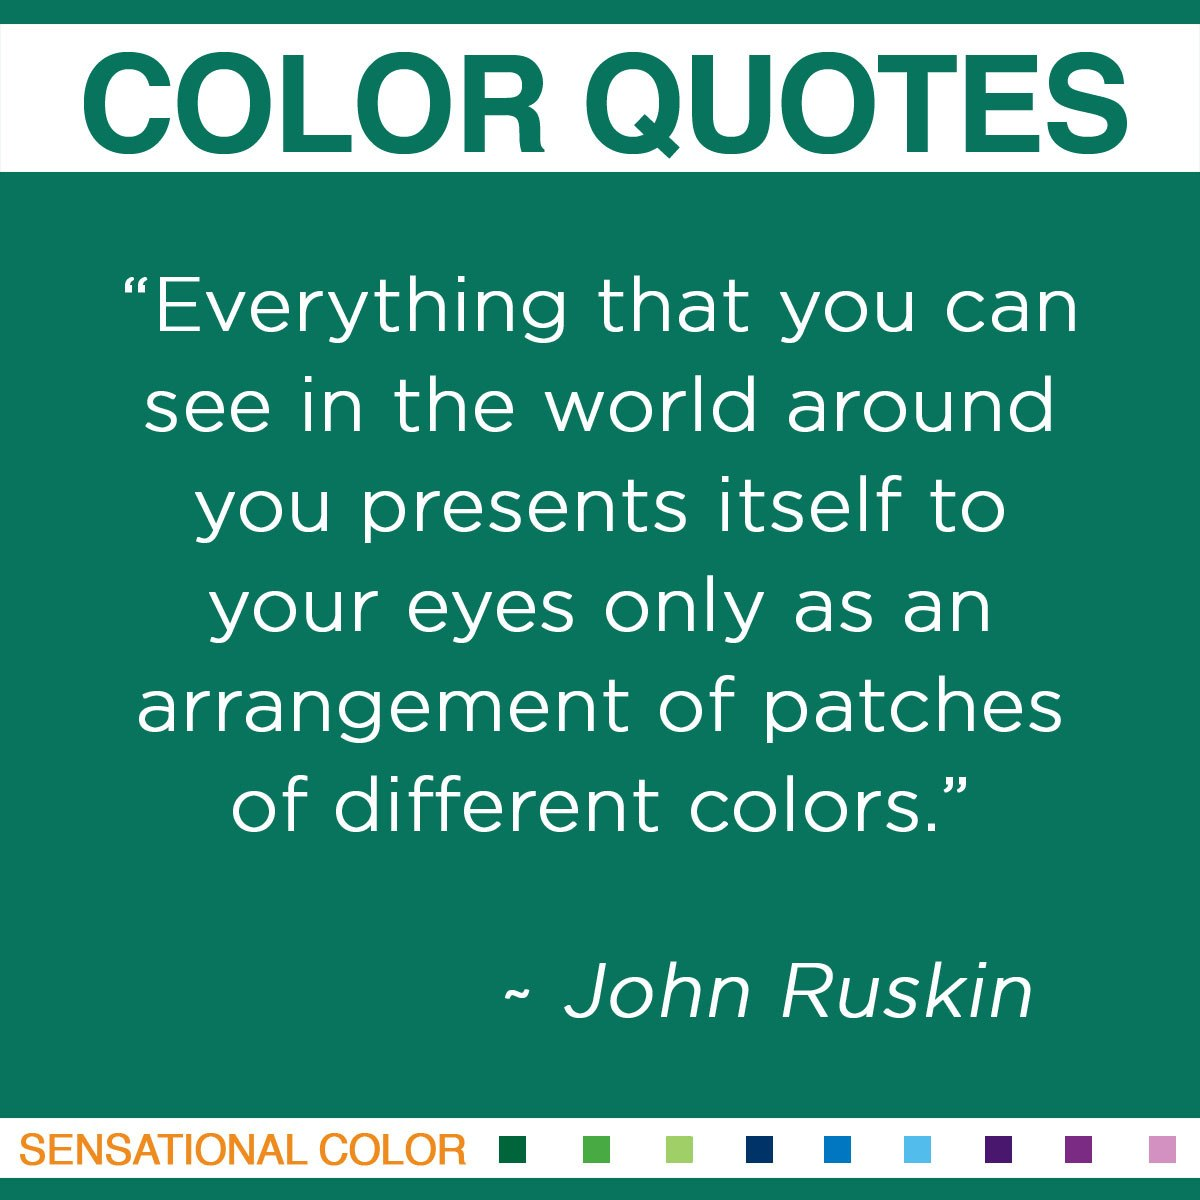 """Everything that you can see in the world around you presents itself to your eyes only as an arrangement of patches of different colors."" - John Ruskin"